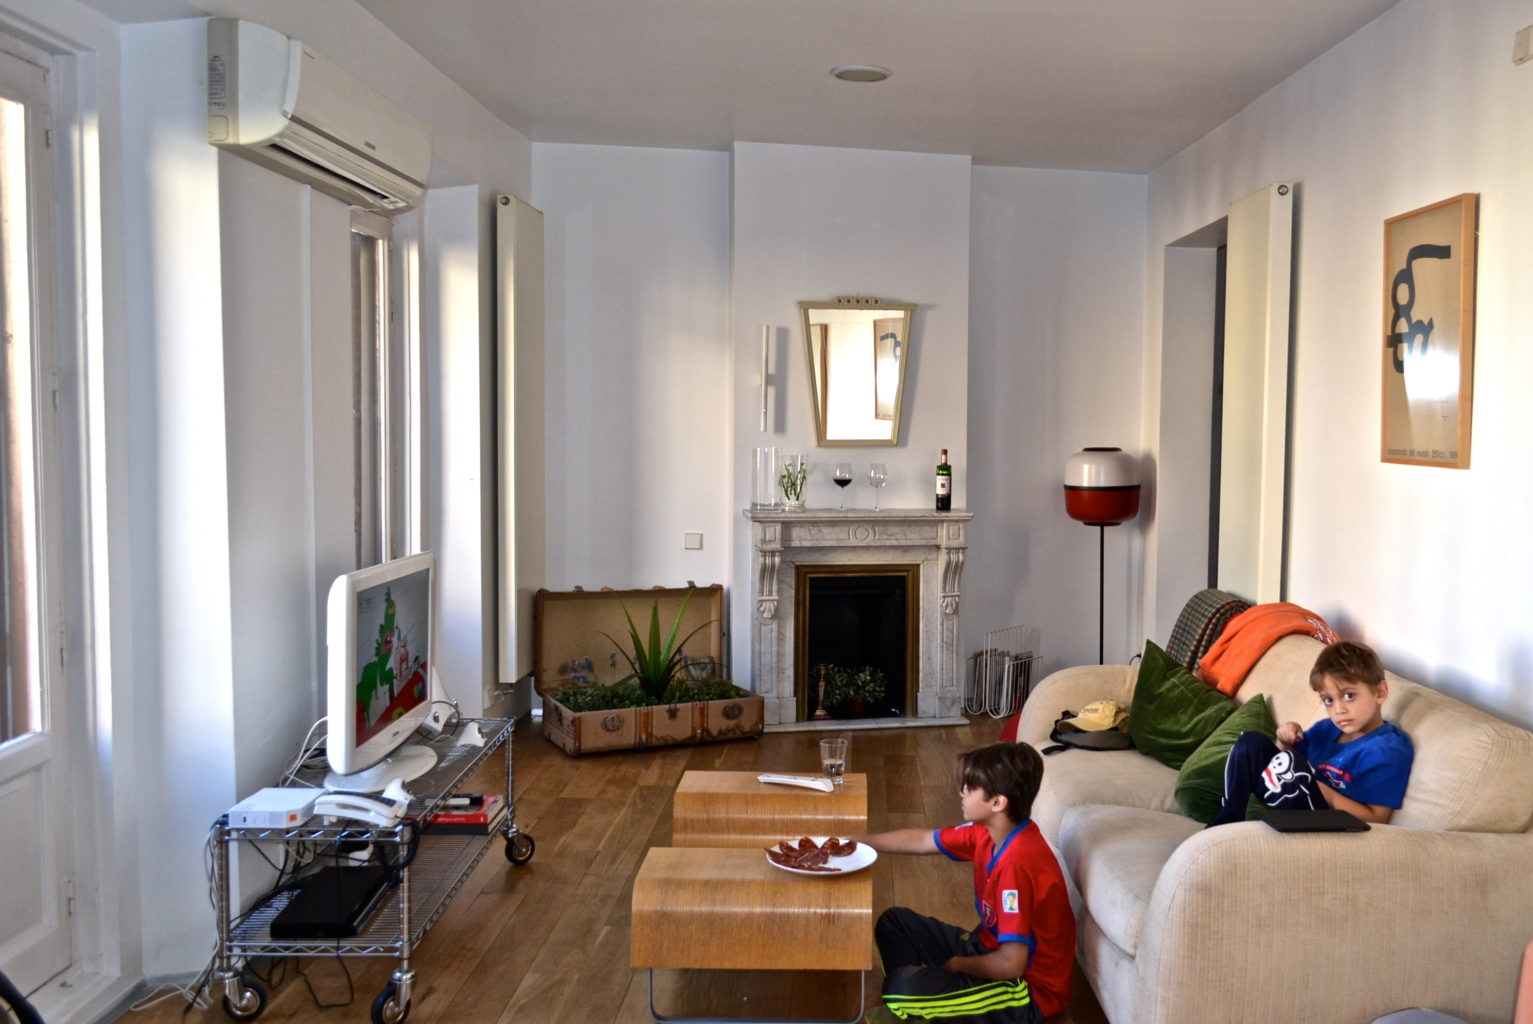 Boys in an Airbnb living room - TravelingMom